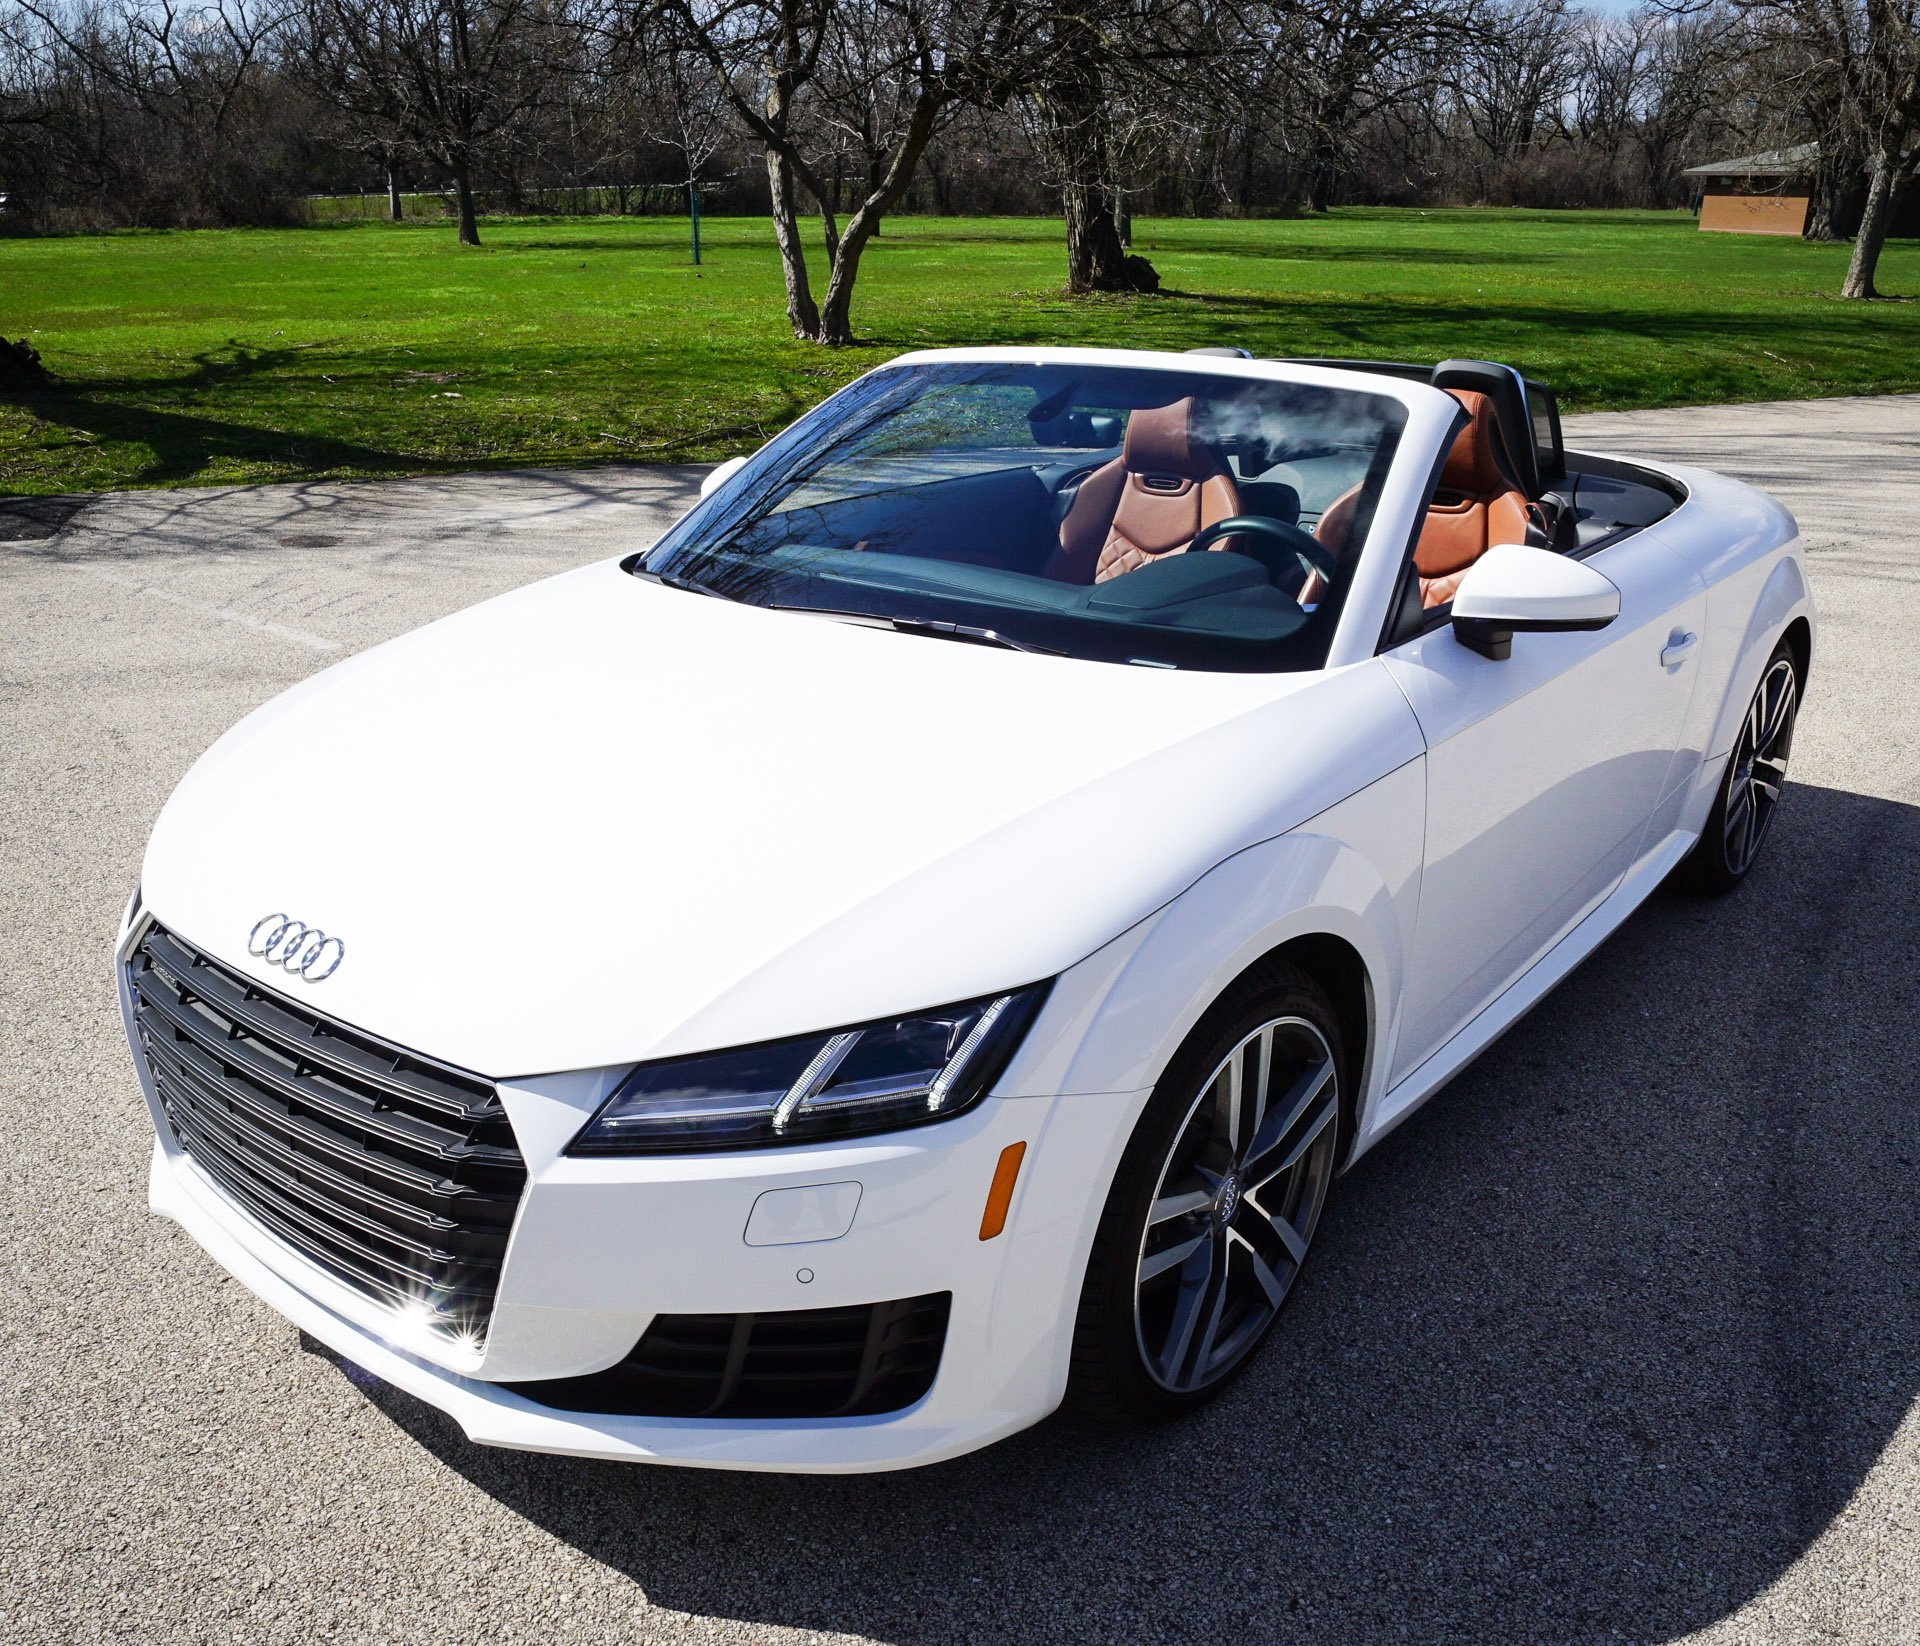 Review: 2016 Audi TT Roadster 2.0T Quattro